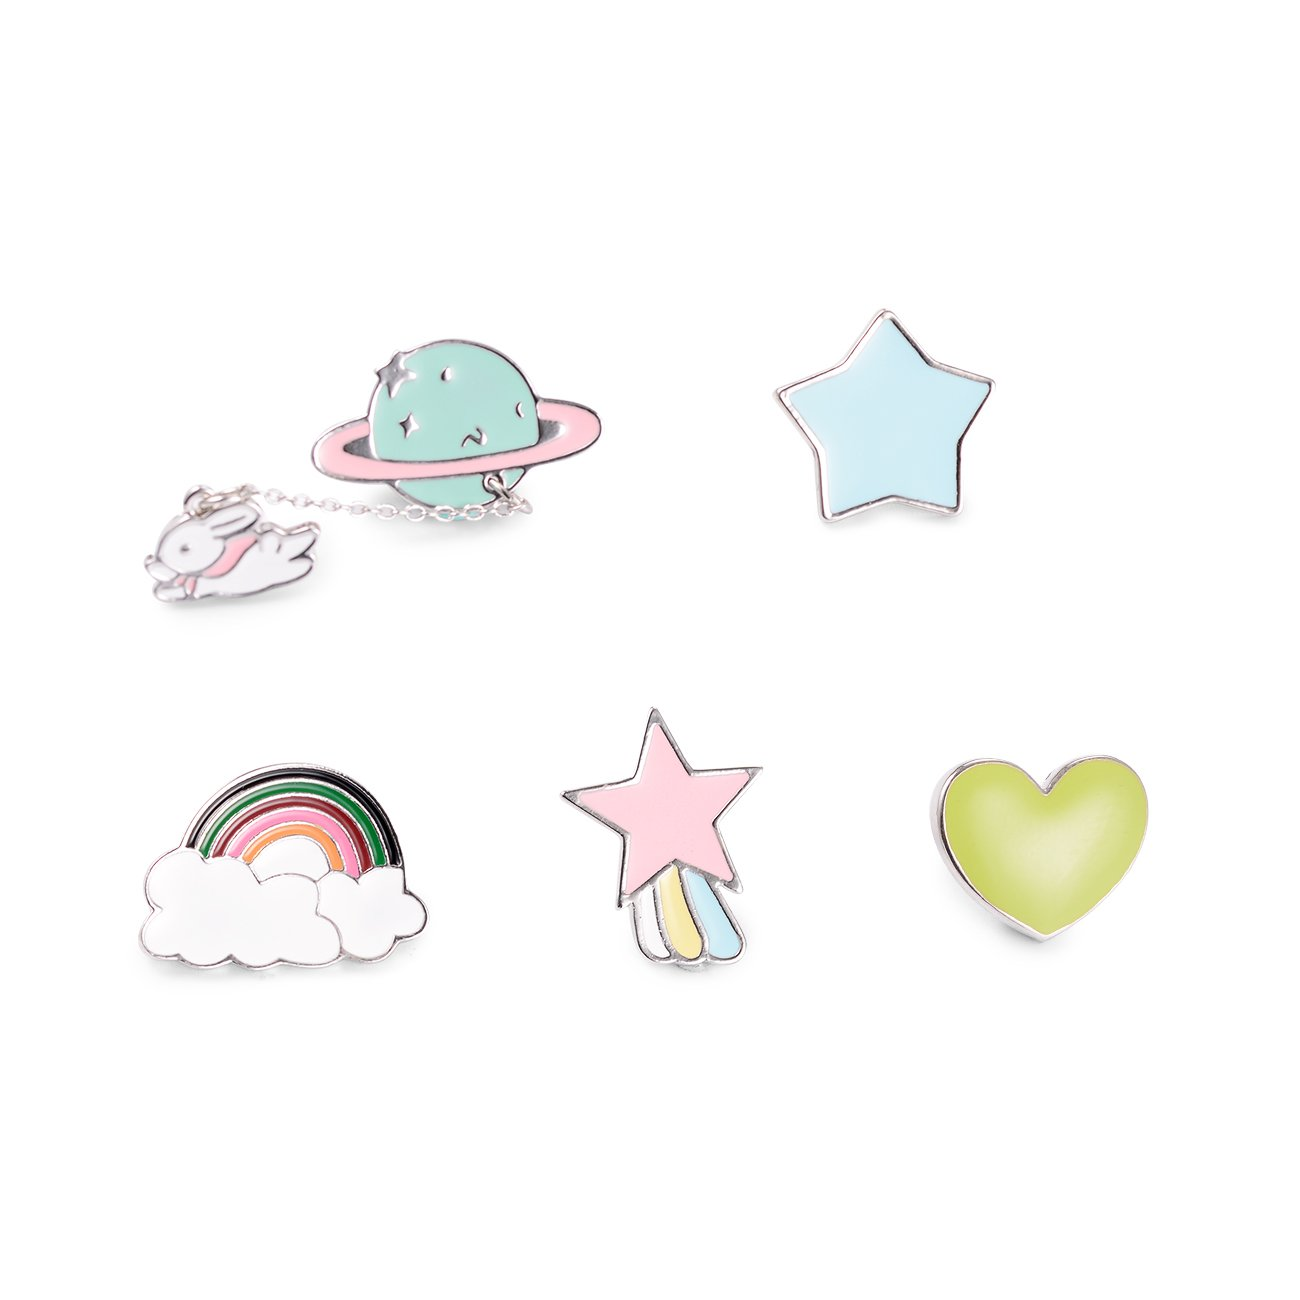 TAO SHI Cute Cartoon Enamel Lapel Pin Set - Fashion Brooch Pins Badges for Clothes Bags Backpacks, for Women Girls Teen Children Kawaii